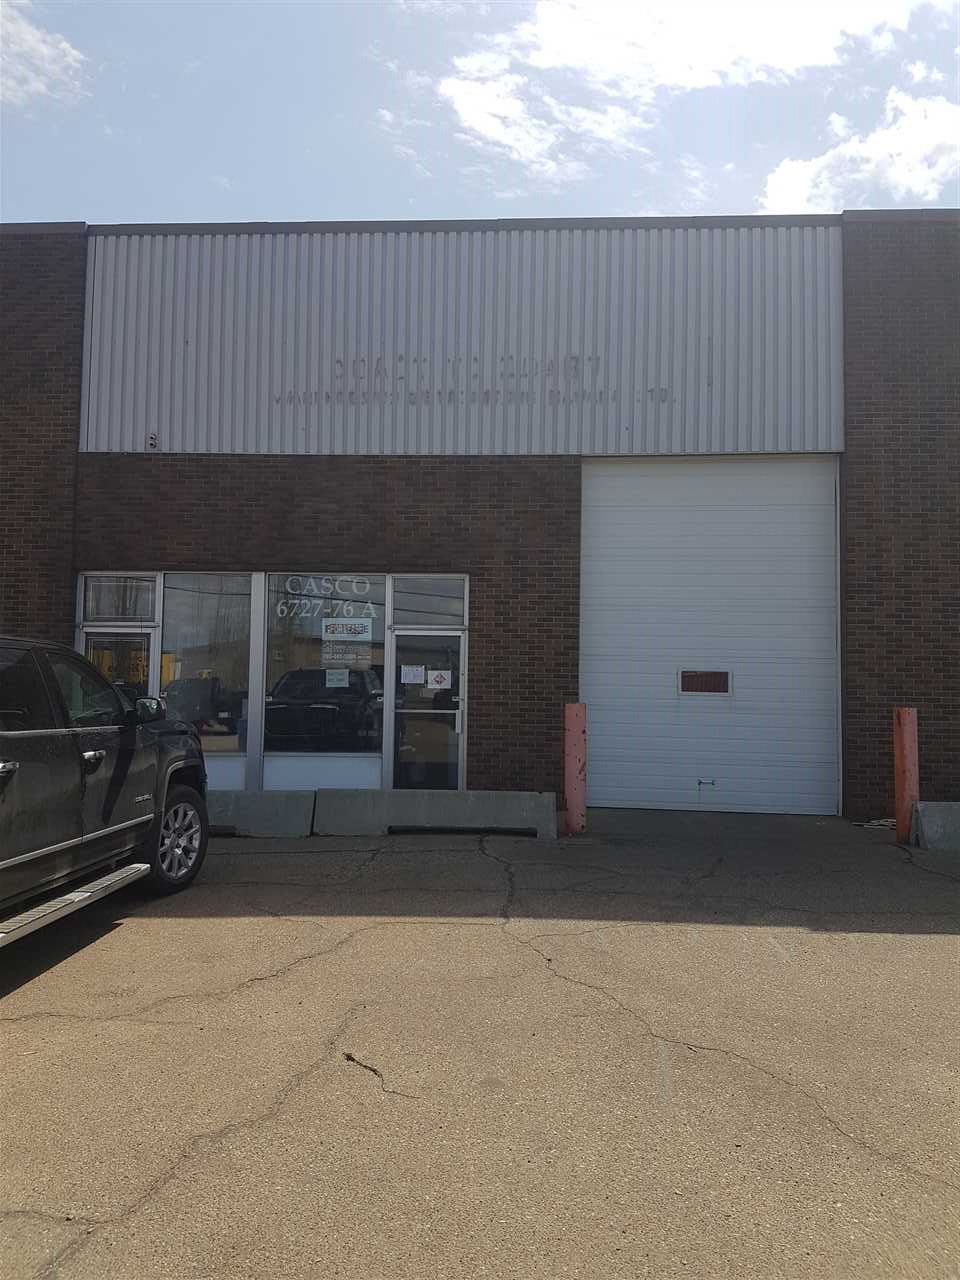 Well Located 4250 Sq ft Warehouse in Girard Industrial just off of Argyll Road and Sherwood Park Free way .  This wide open Warehouse features a front access 10' x 14' OH door, 3 Piece Bath  and has additional adjacent bays available for additional space   Great sub Lease opportunity at attractive rates